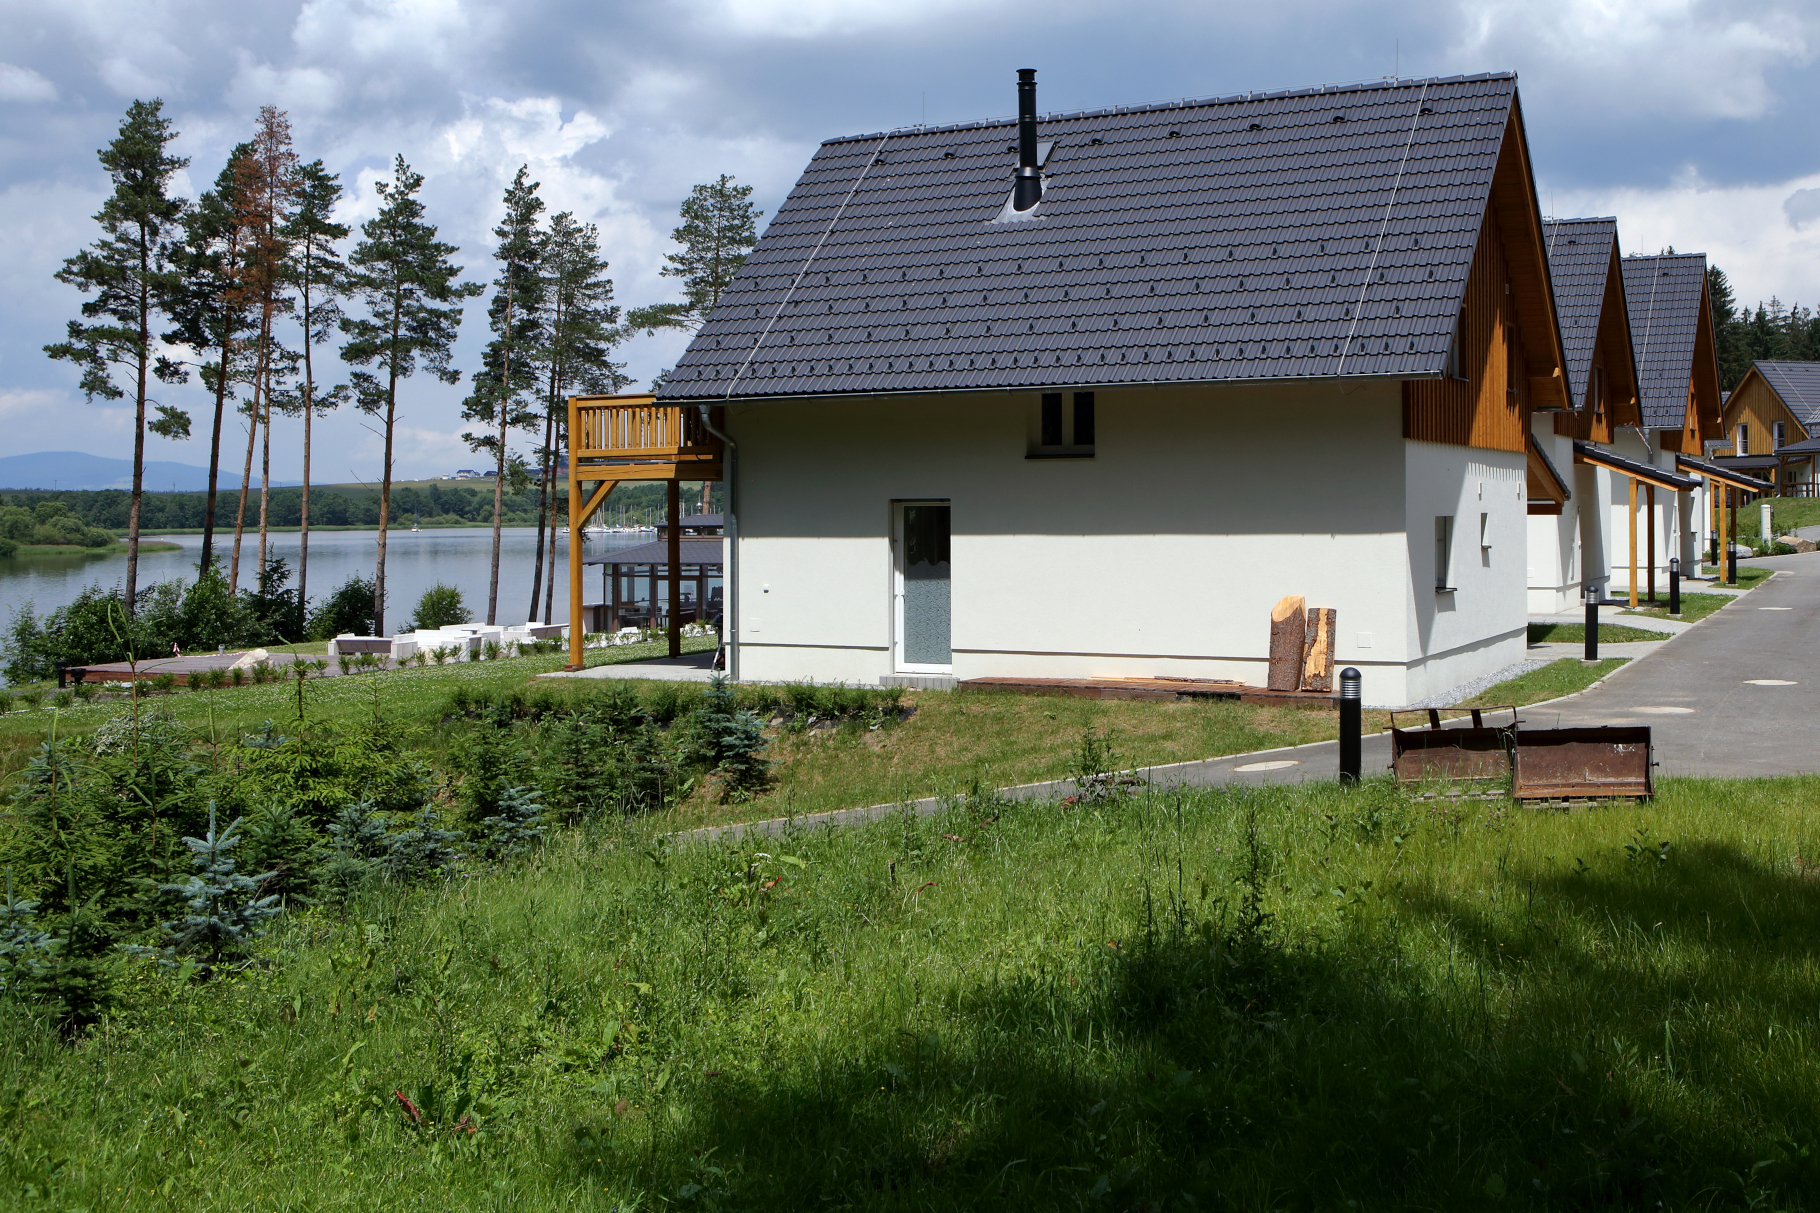 Lakeside Village Lipno nad Vltavou - Construction de bâtiments